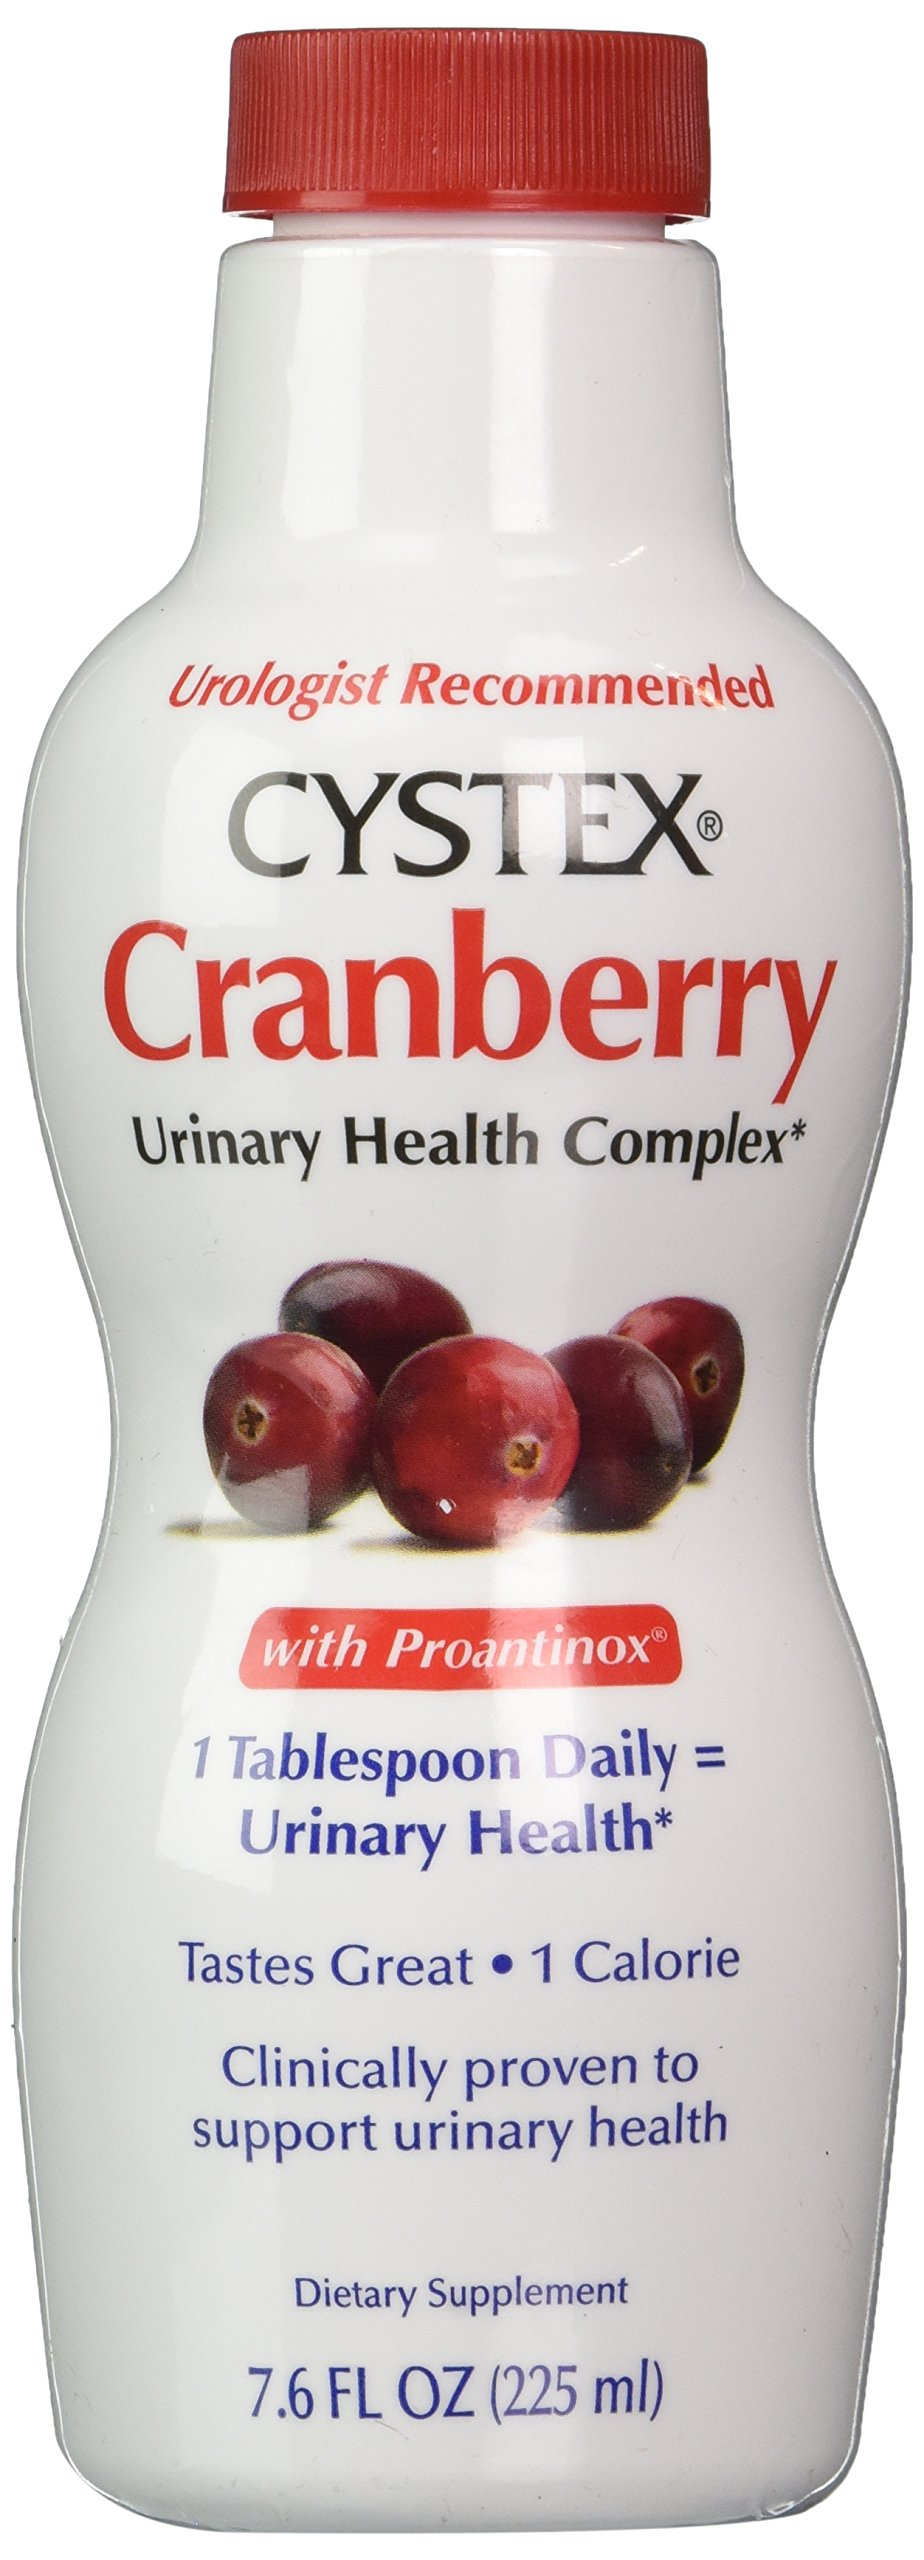 Cystex Urinary Health Maintenance Cranberry 7.6 oz ( Pack of 4) by Cystex (Image #2)